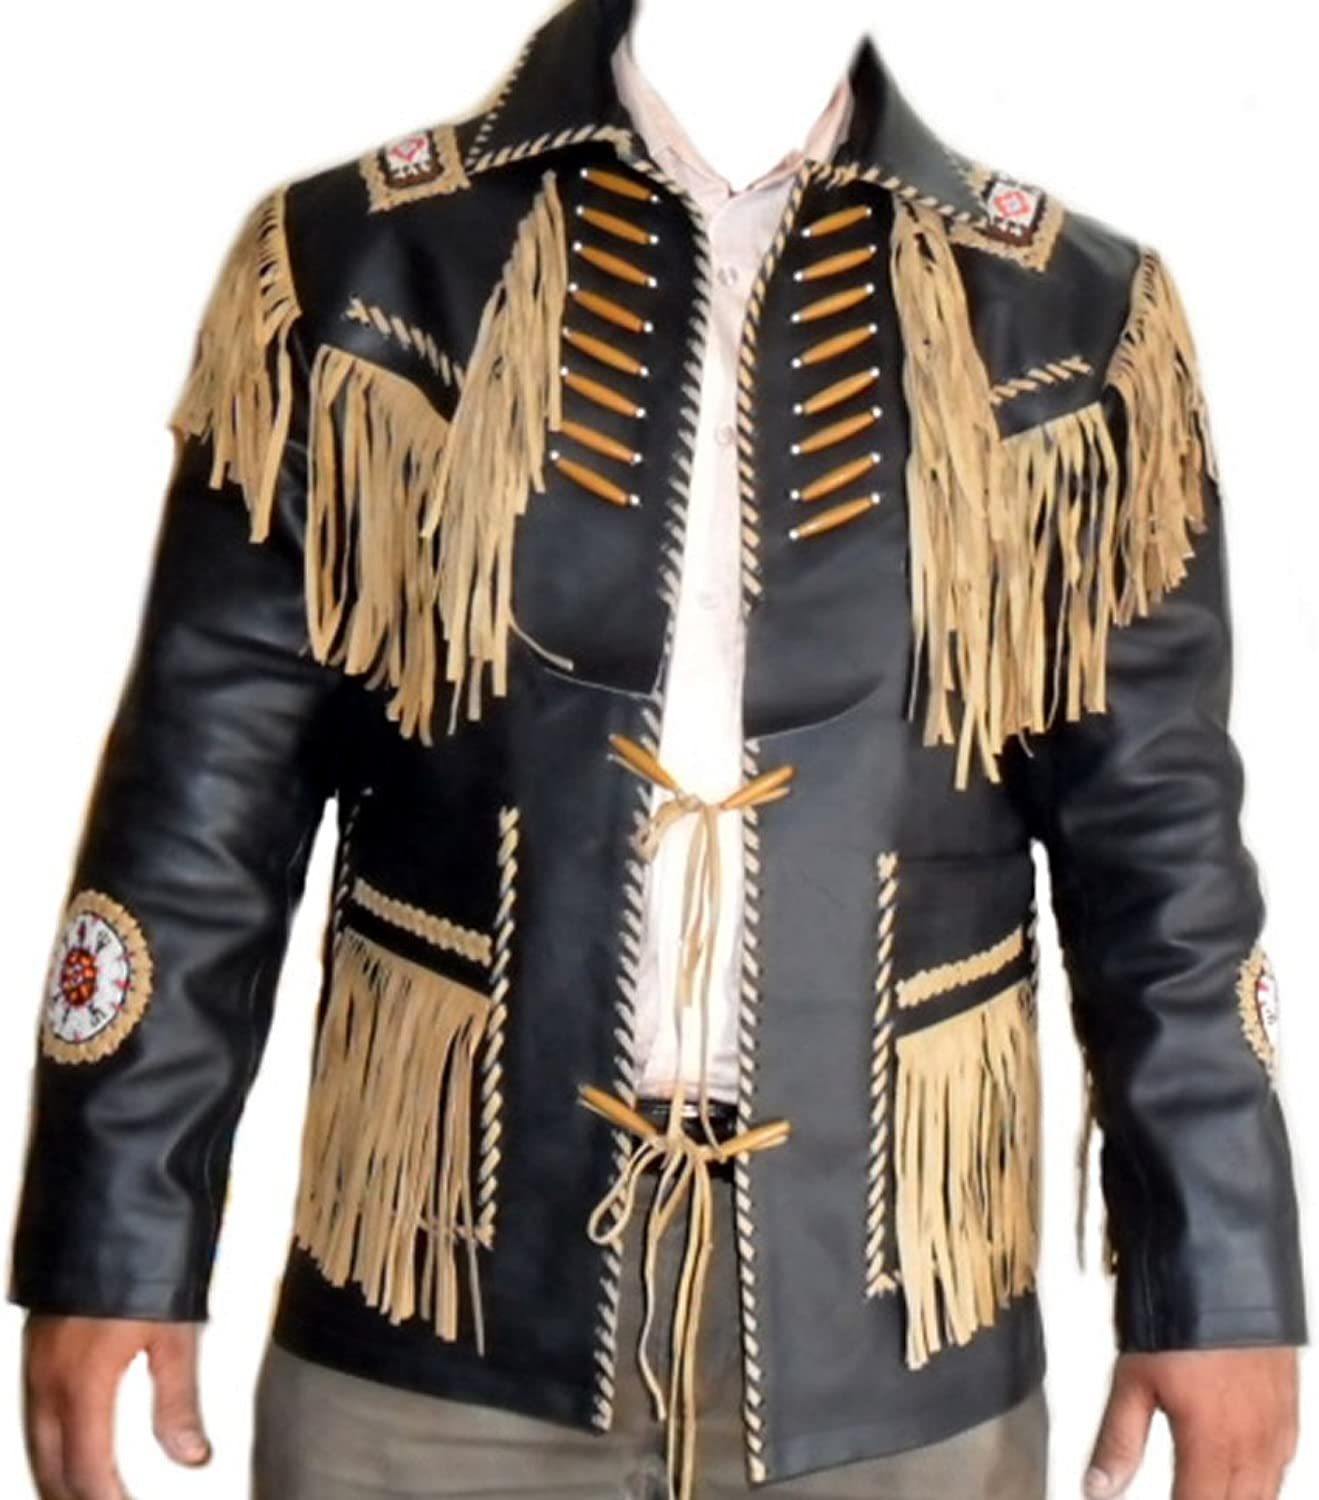 Classyak Western Style Leather Jacket, Fringed, Bones & Beads, Xs5xl